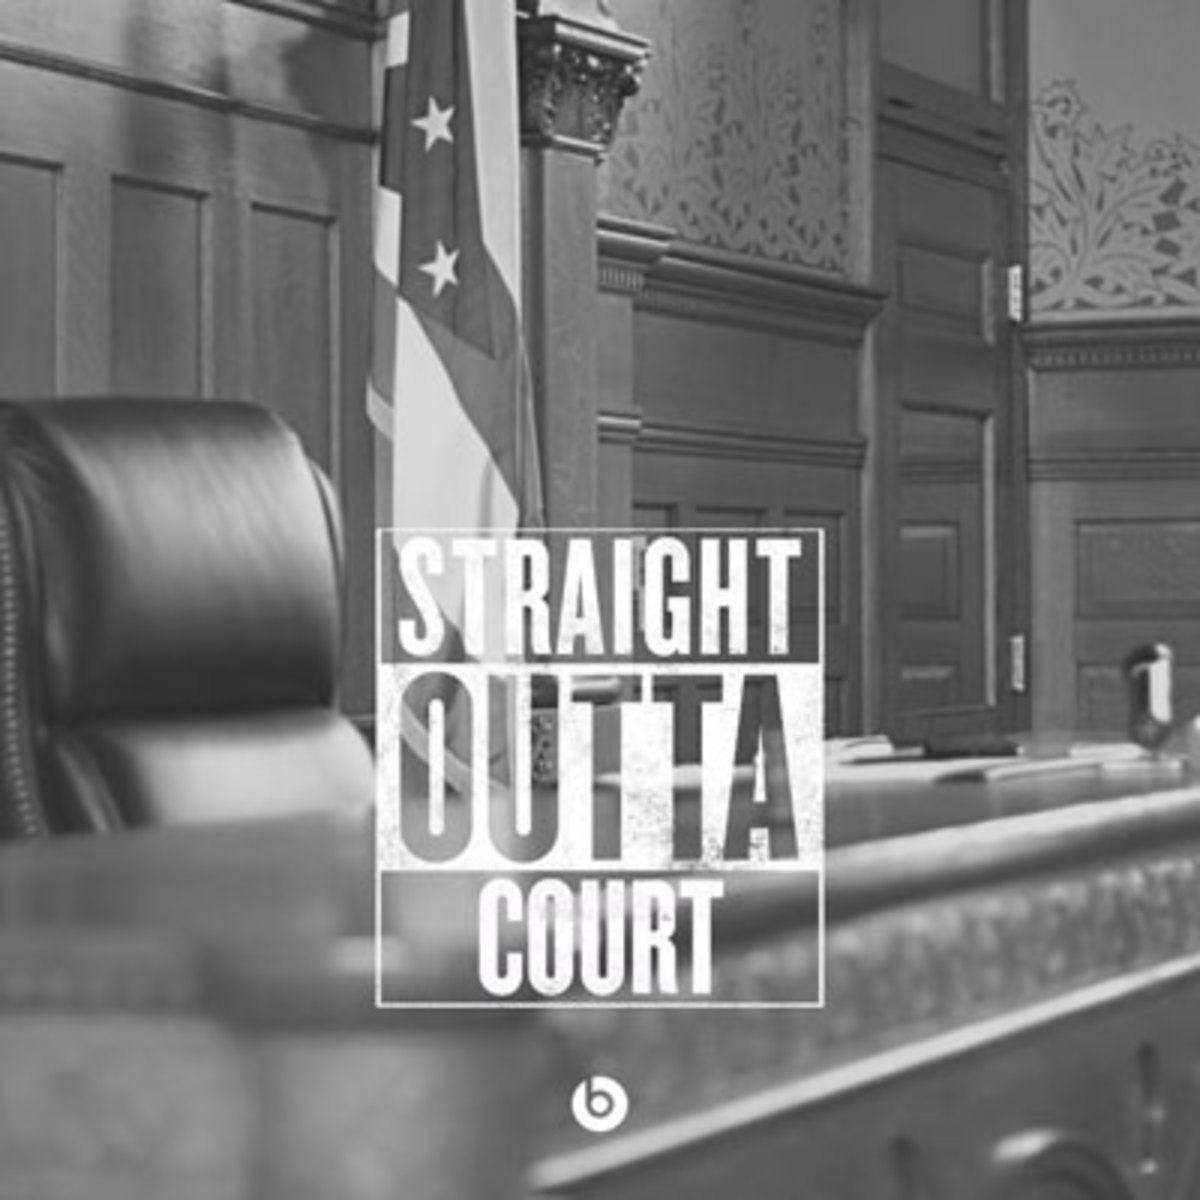 straight-outta-court.jpg